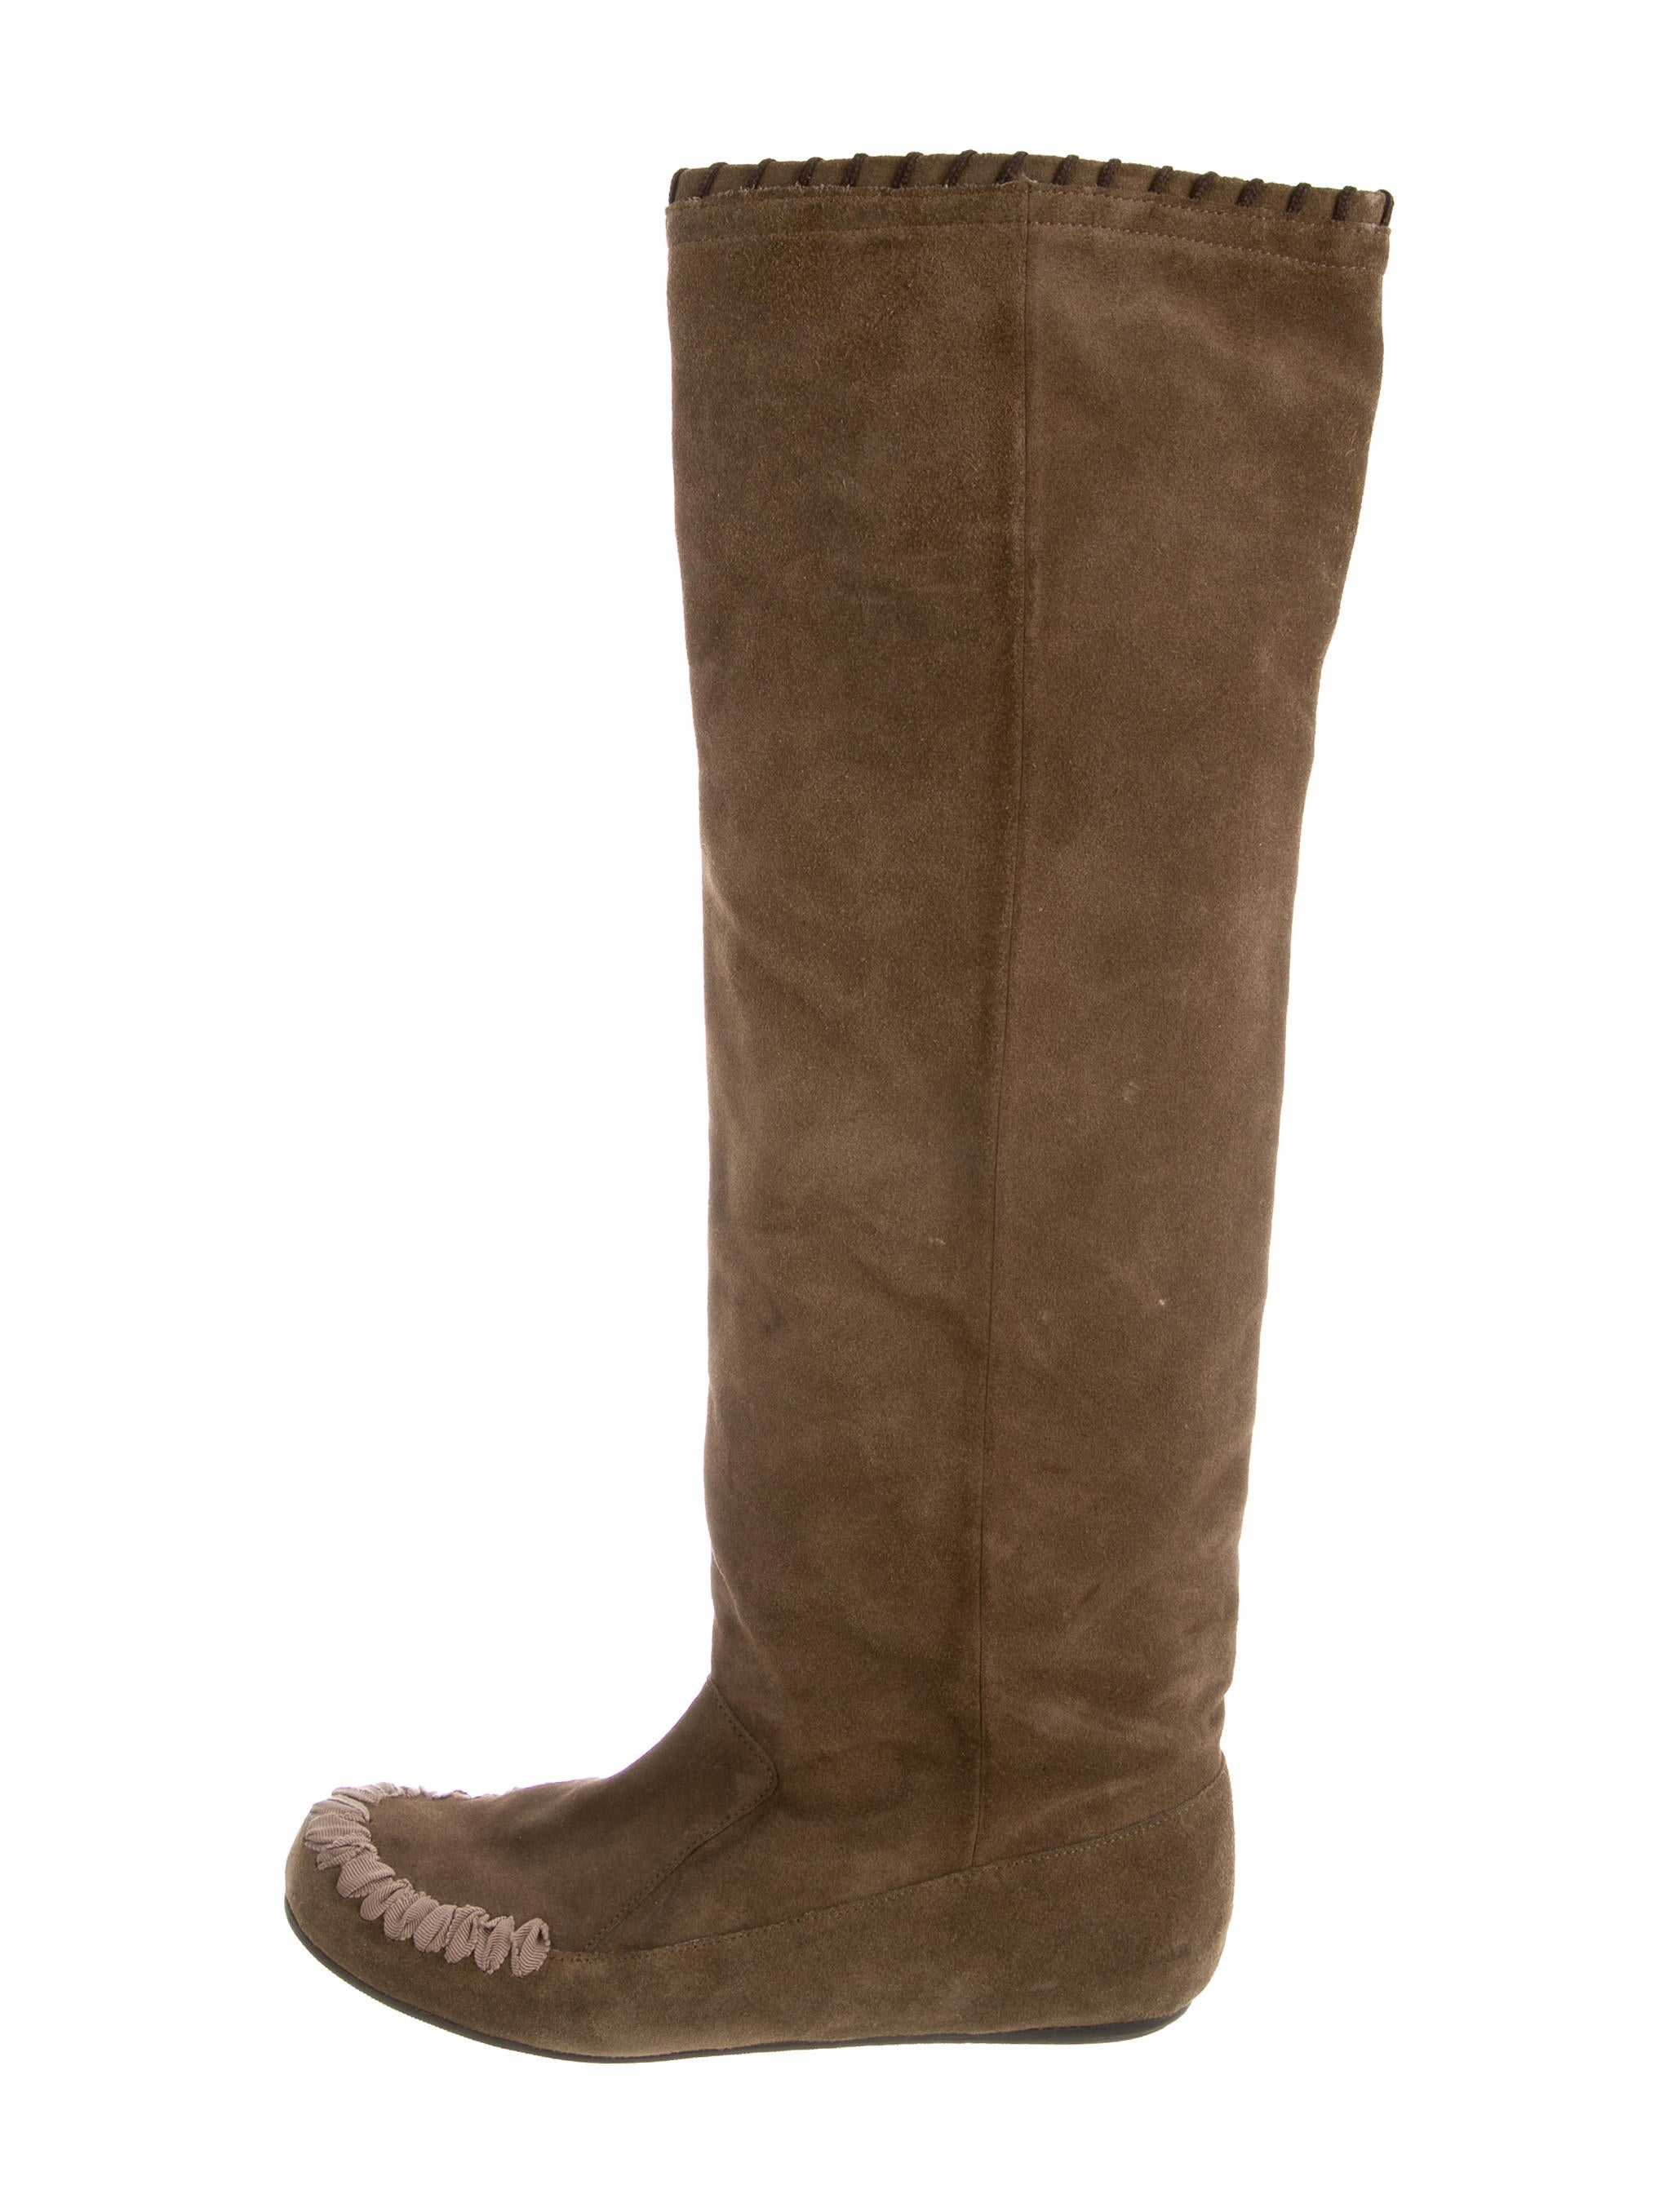 lanvin suede knee high boots shoes lan48391 the realreal